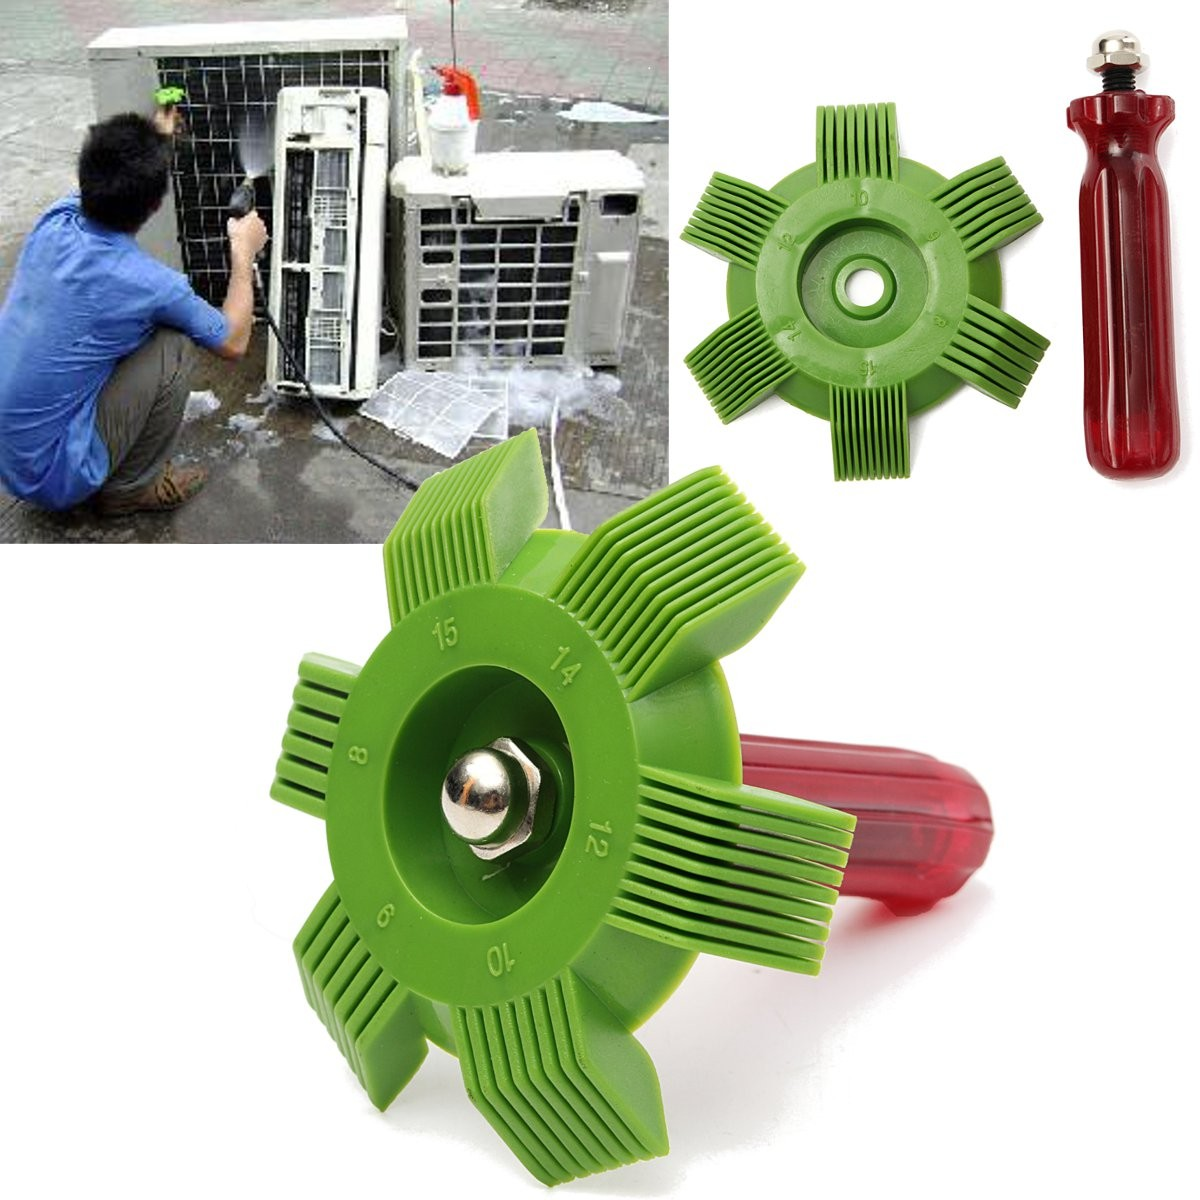 Universal Radiator Condenser Fin Comb Air Conditioner Coil Straightener Cleaning Tool Air Conditioner Home Appliance Part New